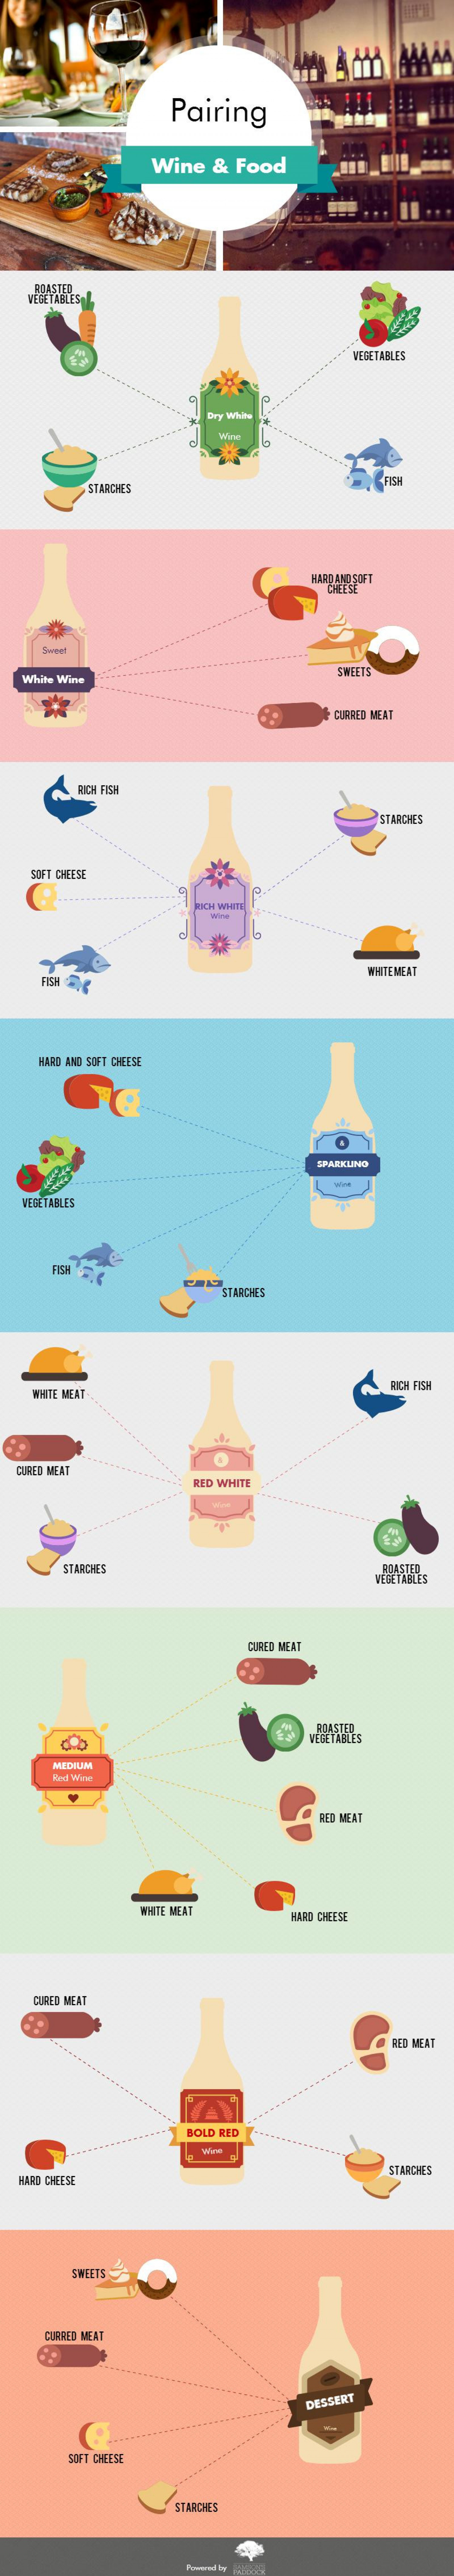 Food & Wine Matching Infographic Infographic